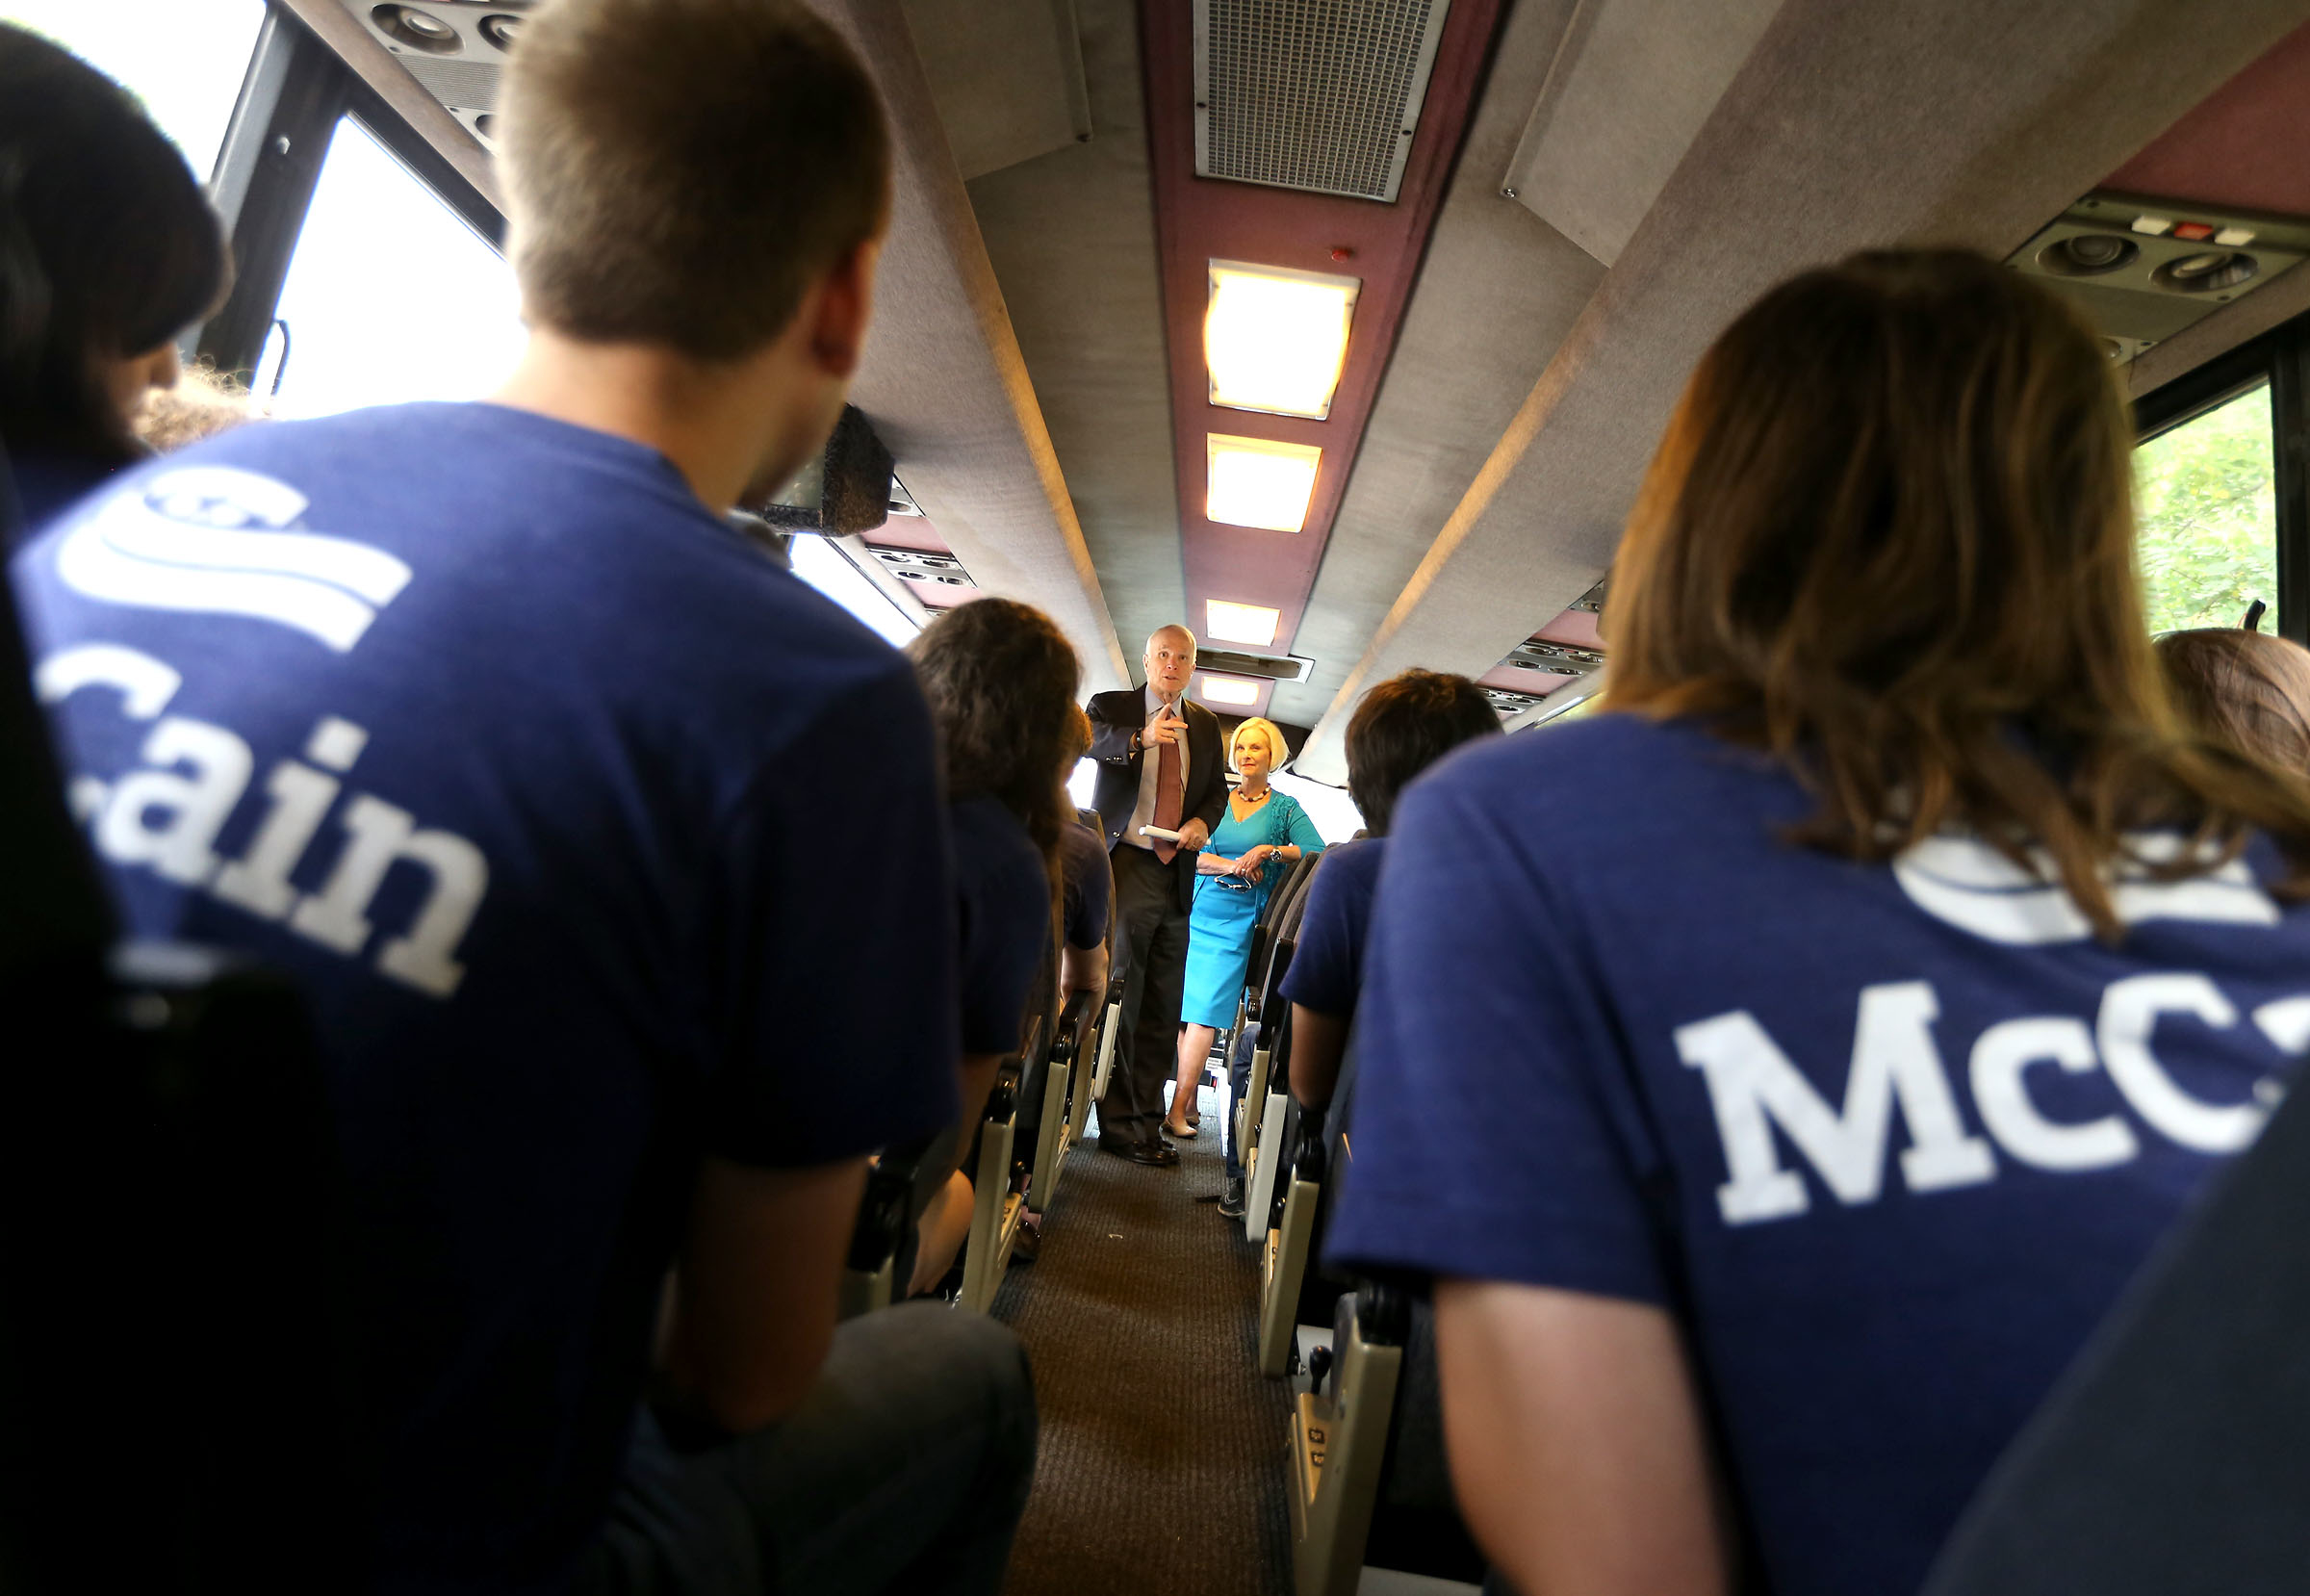 United States Senator John McCain rallies his interns on a campaign bus in Flagstaff Tuesday on a break from a door to door get out the vote effort by the campaign to reelect McCain. His wife, Cindy is at his side. (Daniel A. Anderson) John Sidney McCain III (born August 29, 1936) is the senior United States Senator from Arizona. (Photograph by Daniel A. Anderson)